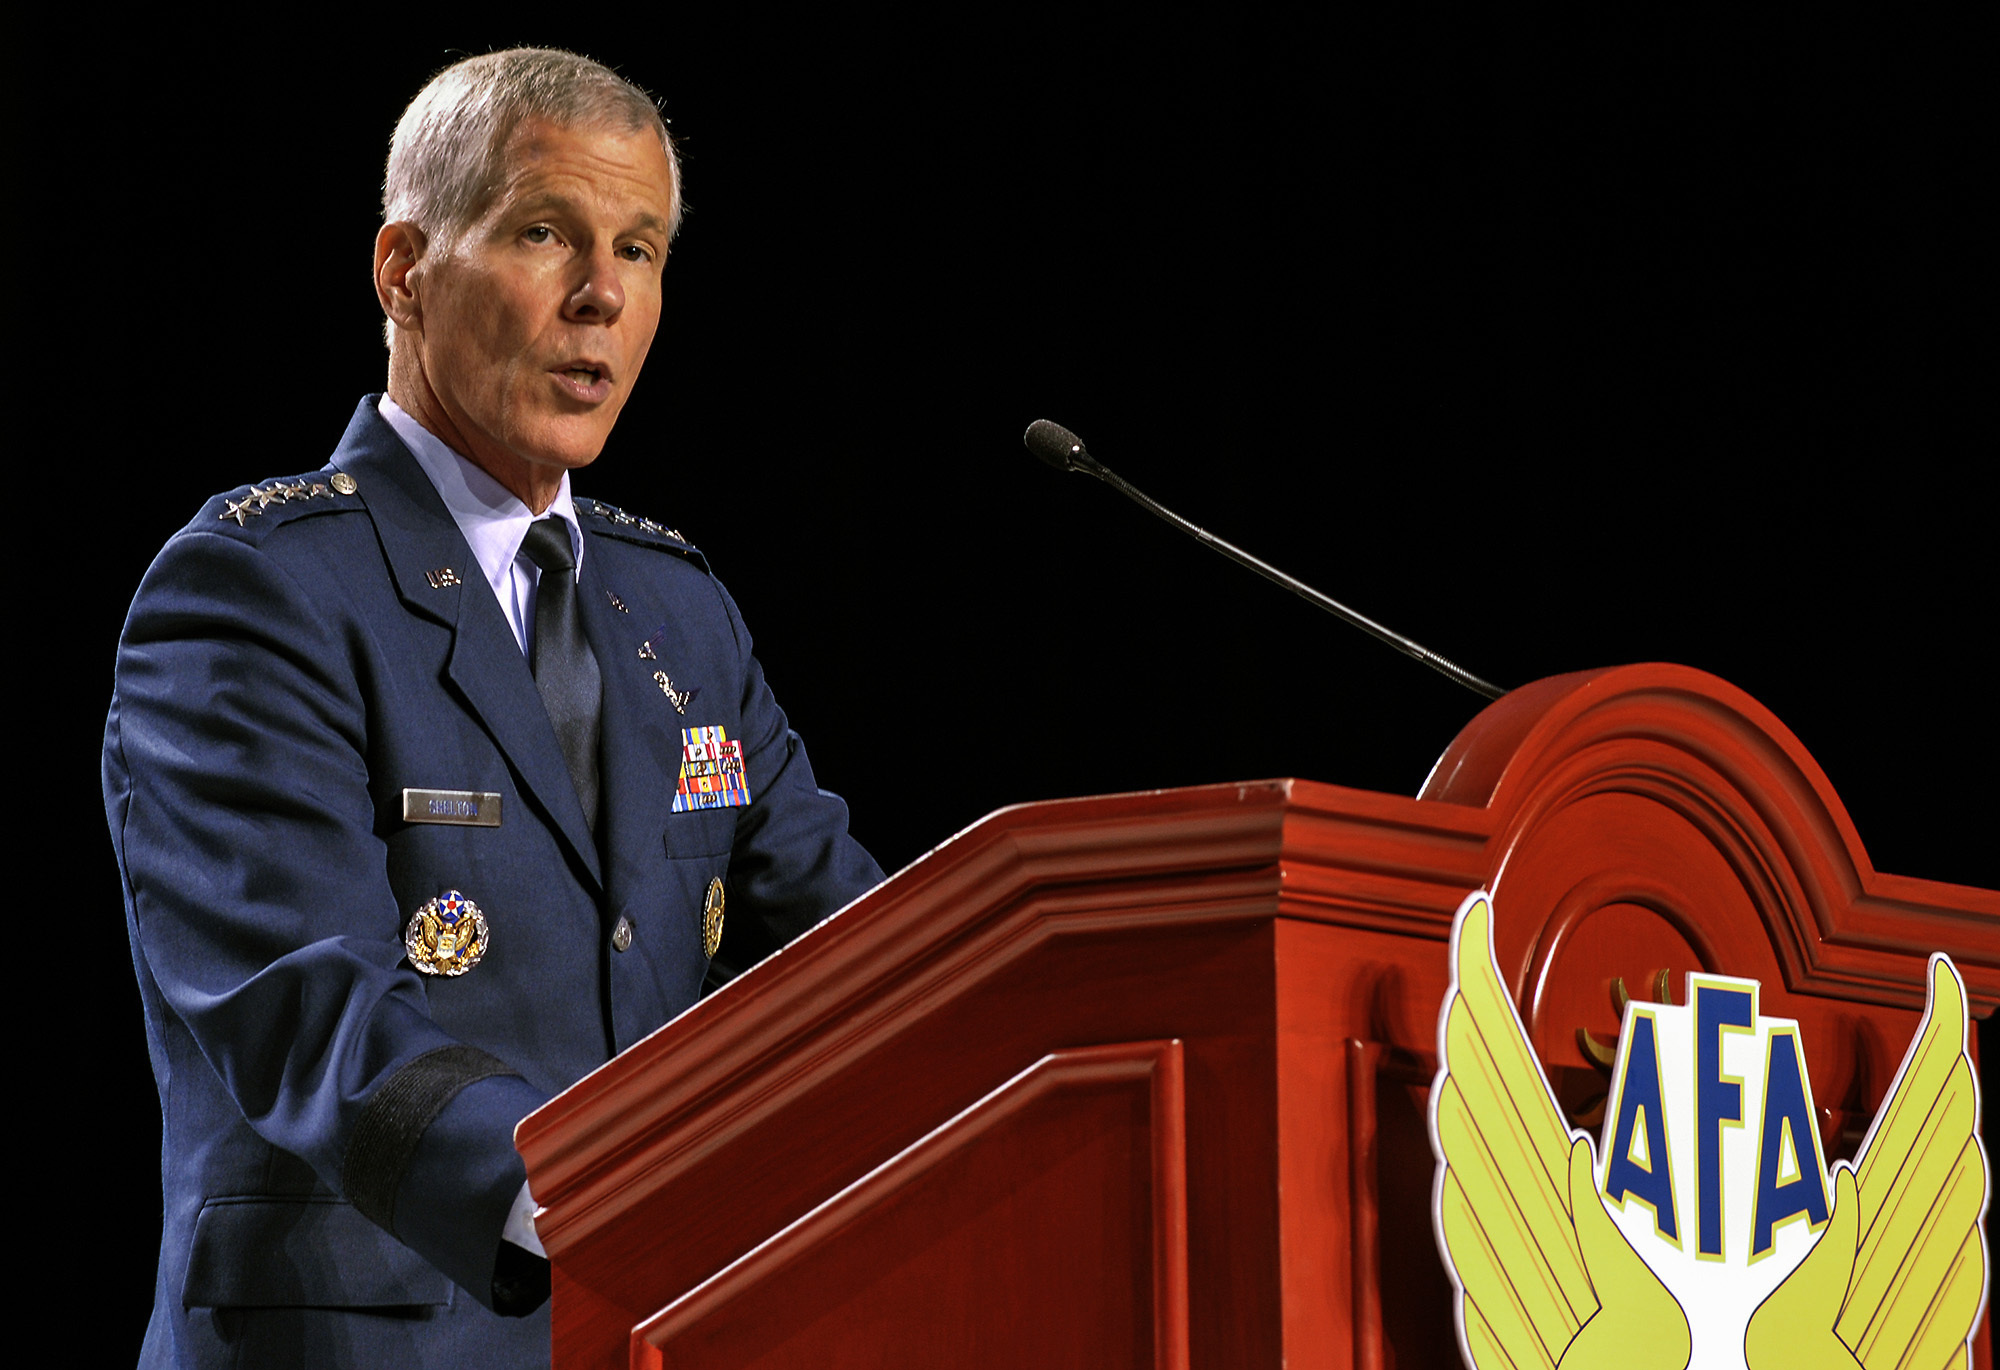 Gen. William Shelton, commander of the U.S. Air Force Space Command, speaks at a conference in Washington, D.C., in August 2012.